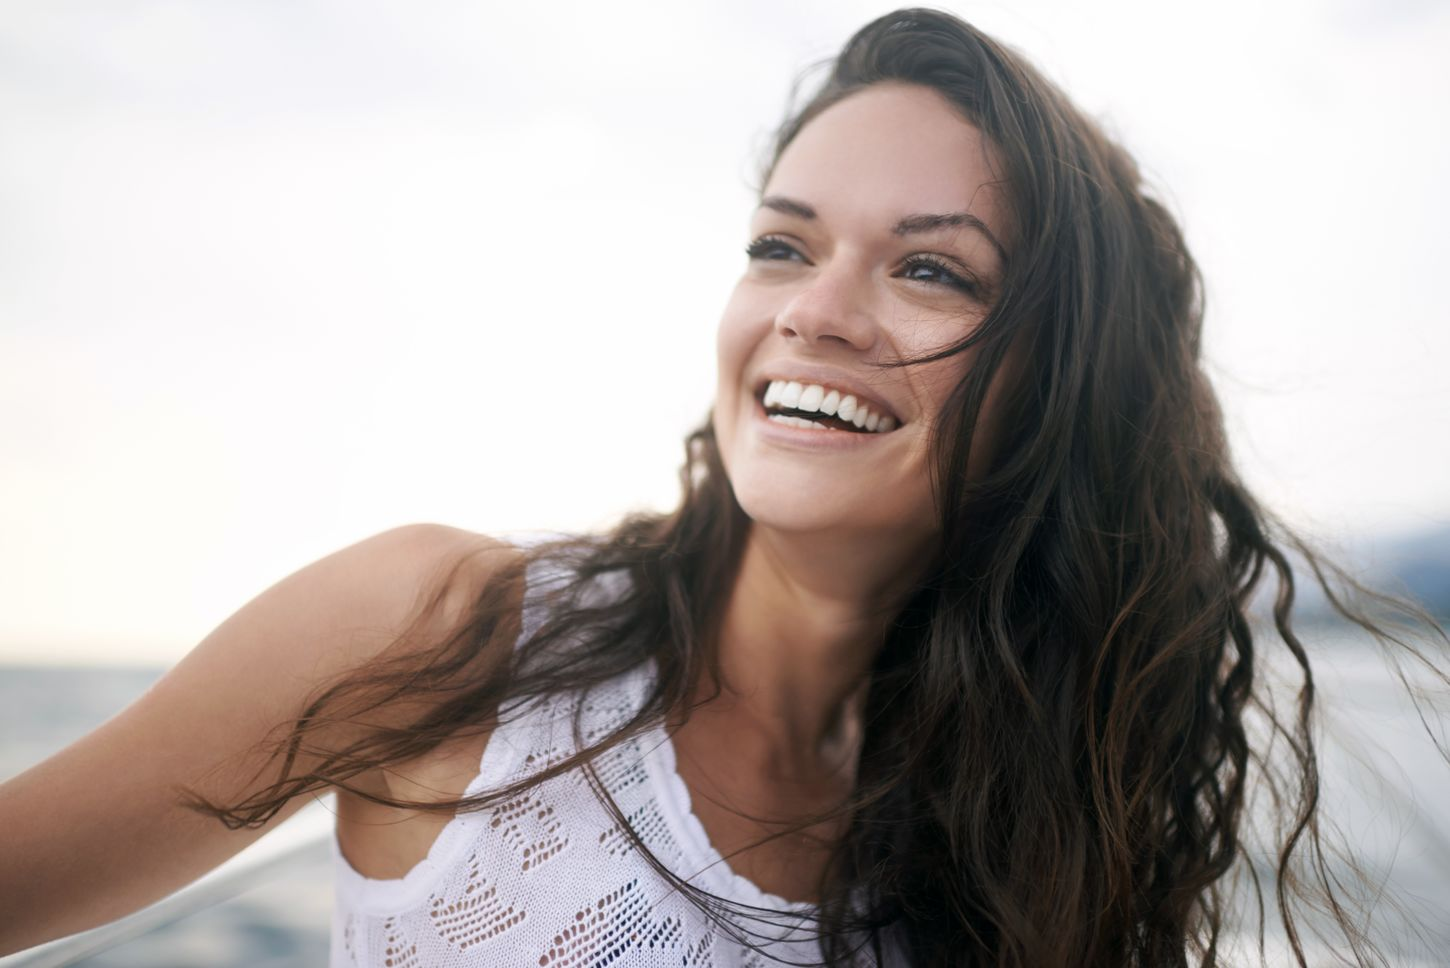 A woman looks off into the distance with a big smile on her face. Her long brown hair flows around her, and she wears a white tank top with thick straps. Only her shoulders and face are visible.